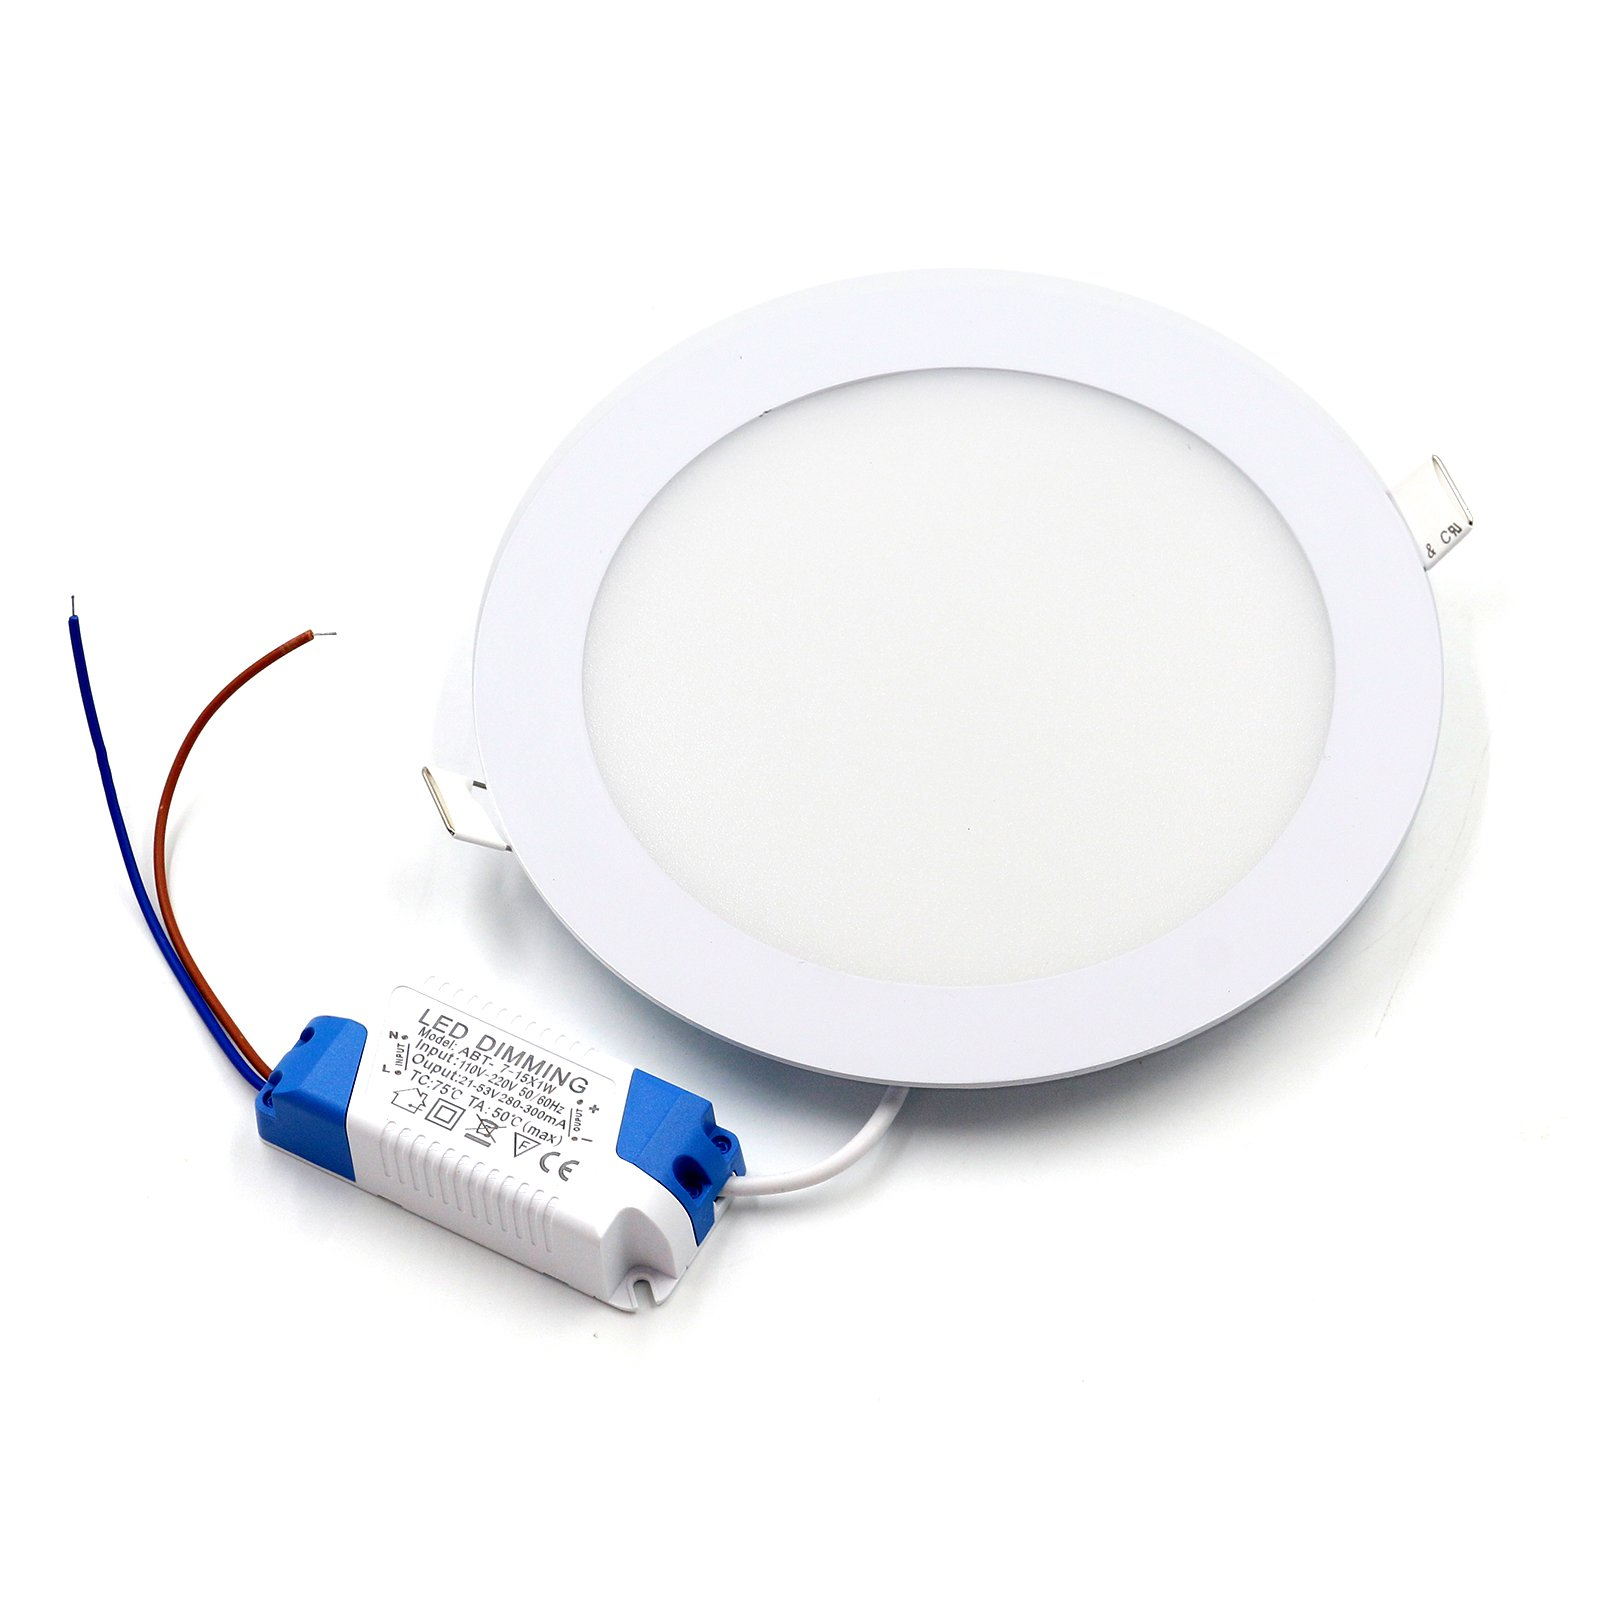 Ultrathin Round LED Recessed Ceiling Light, LED Panel Light,Cool White, Ac85-265v,Waterproof,Ultra Bright Flat Down Light With LED Driver (15W, Cool White)